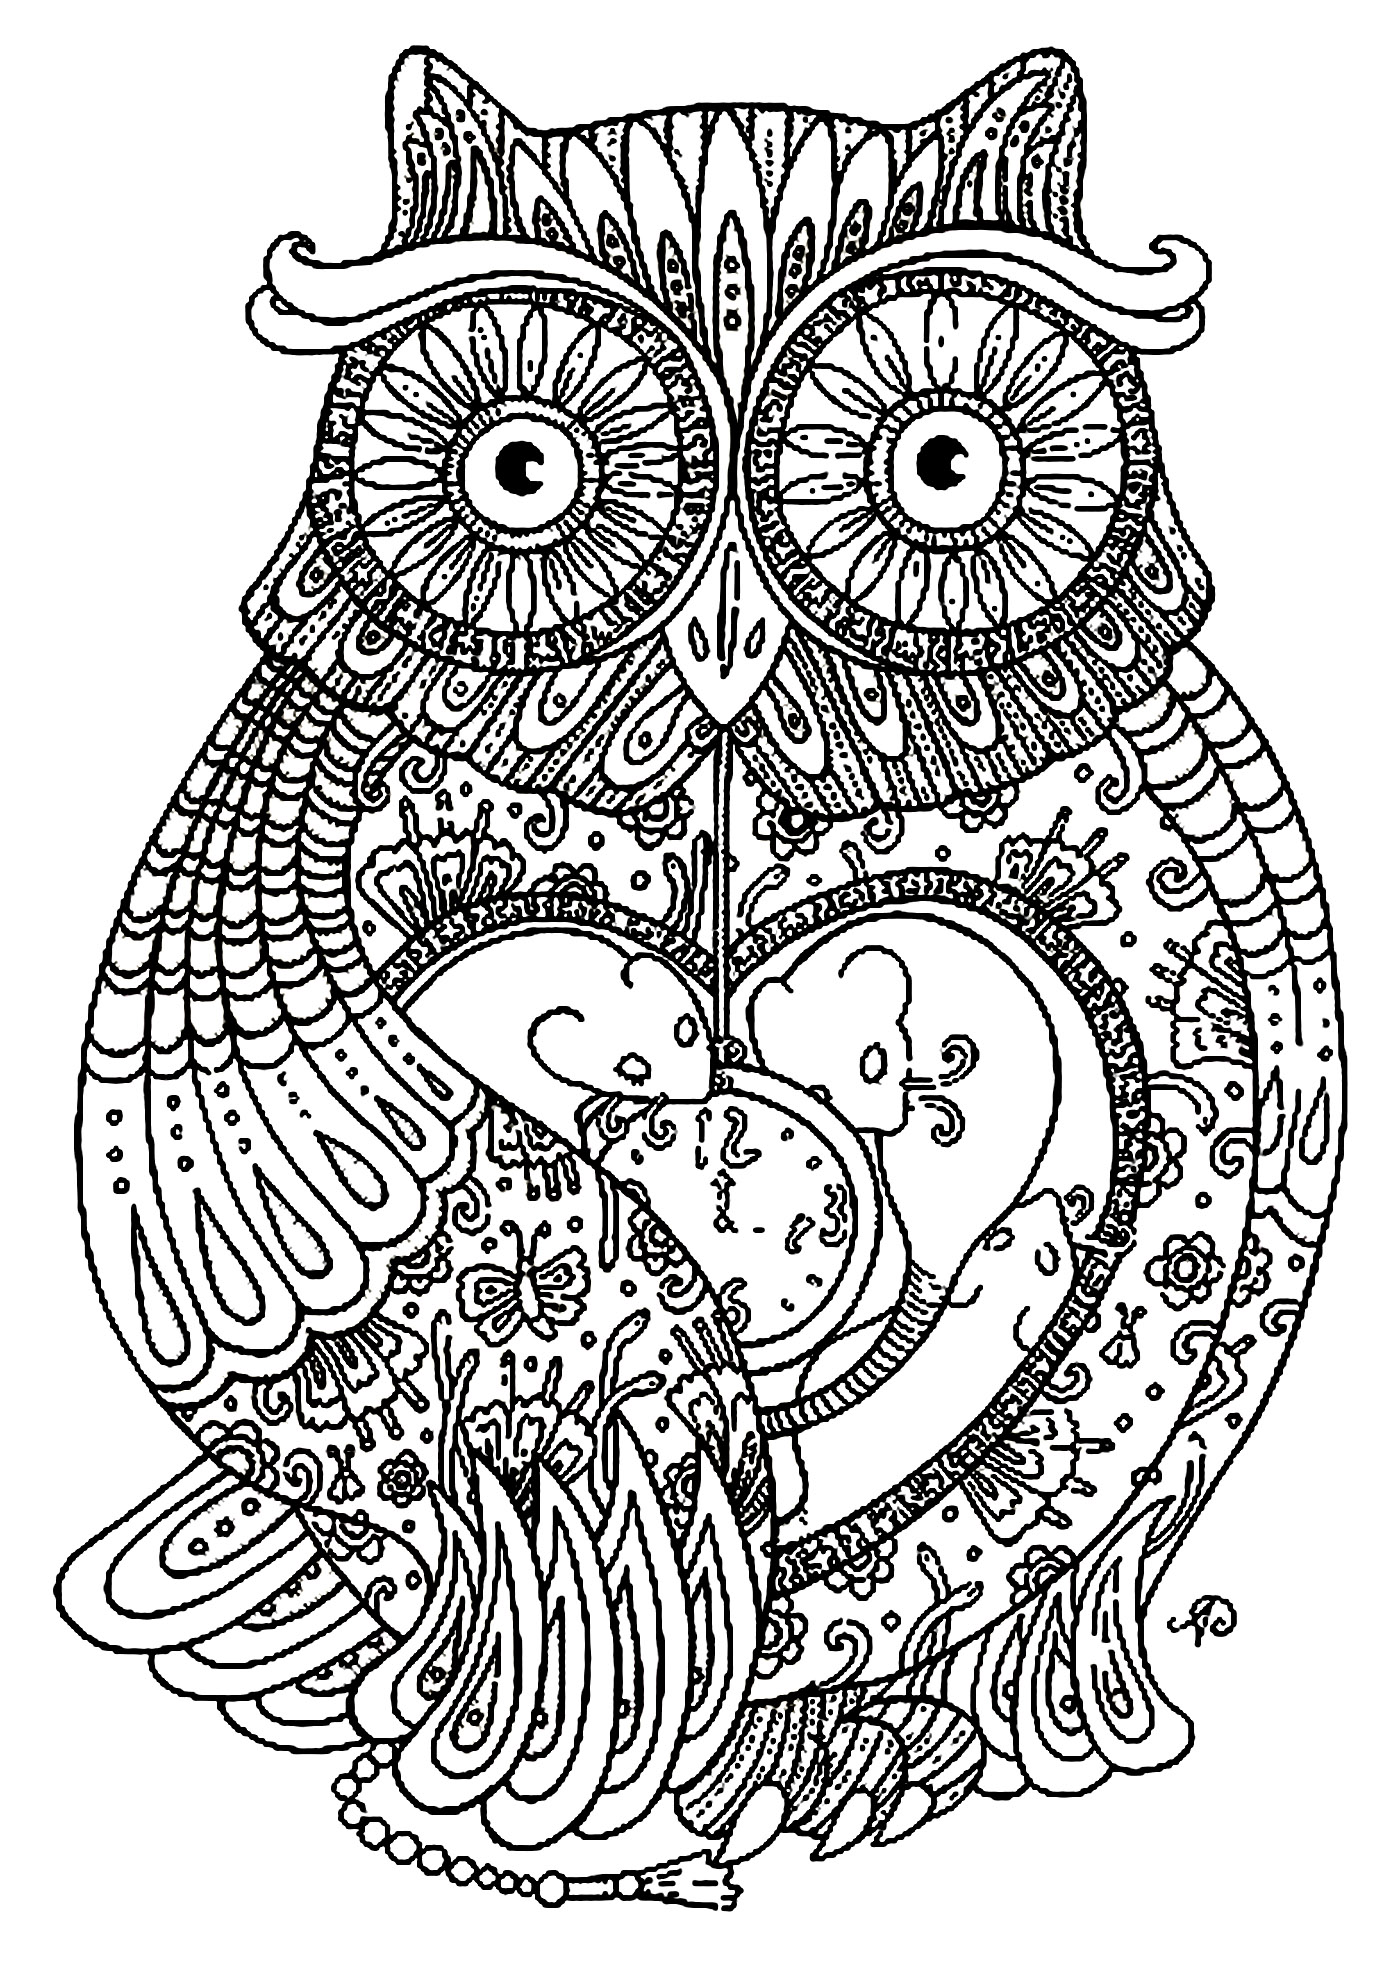 1400x1964 Free Coloring Page Coloring Adult Big Owl. Pretty Owl Full